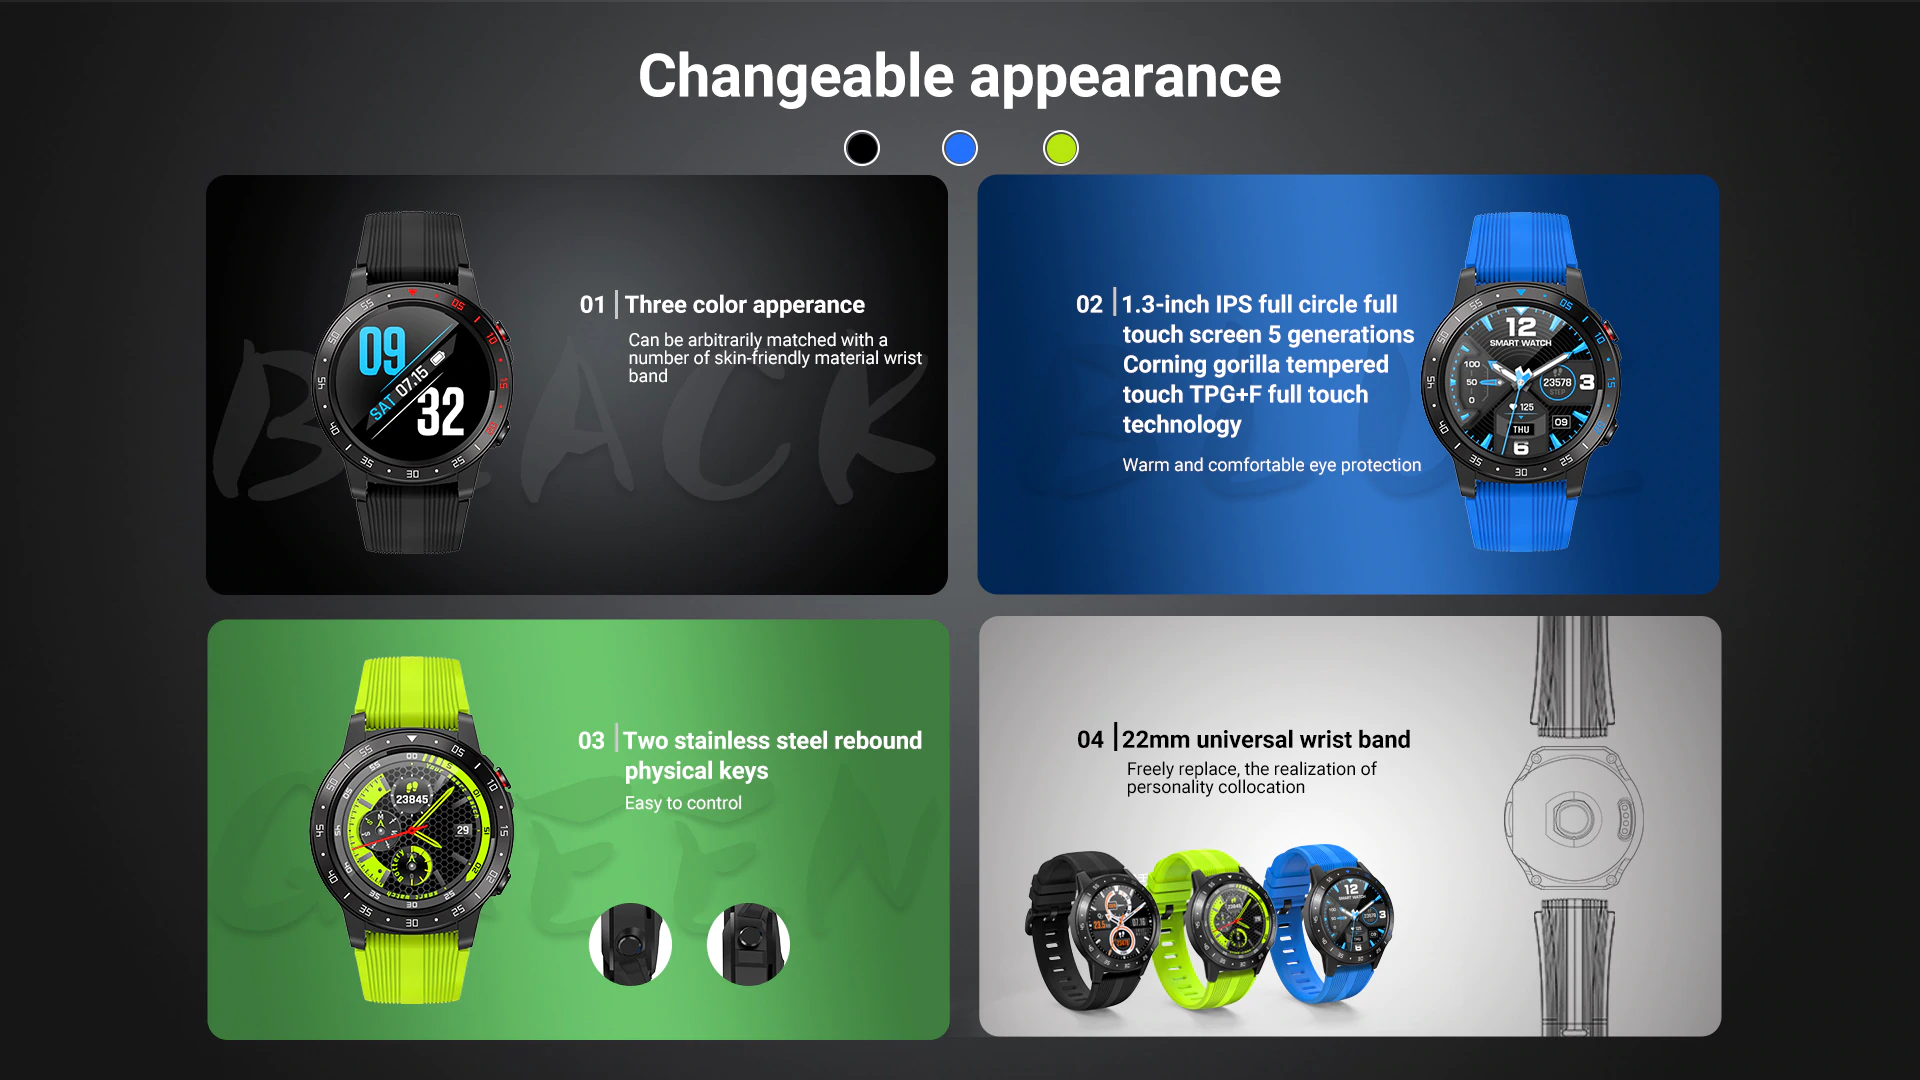 Changeable Appearance of Smart Watch